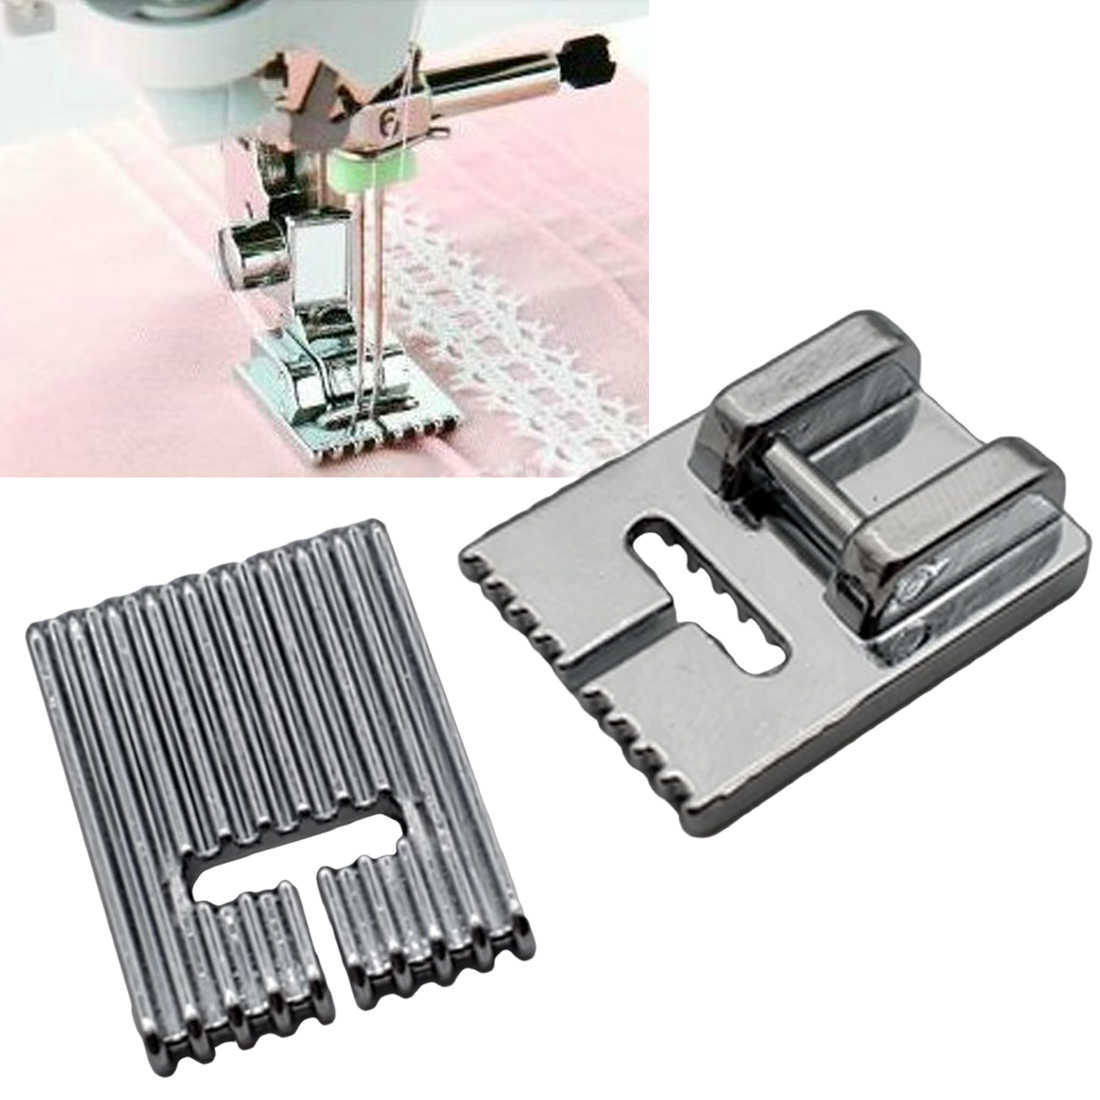 Home Supplies 5/7/9 Grooves Sewing Machine Foot Making Pleat Tank Presser Feet for Janome Singer etc Sewing Machine Accessories